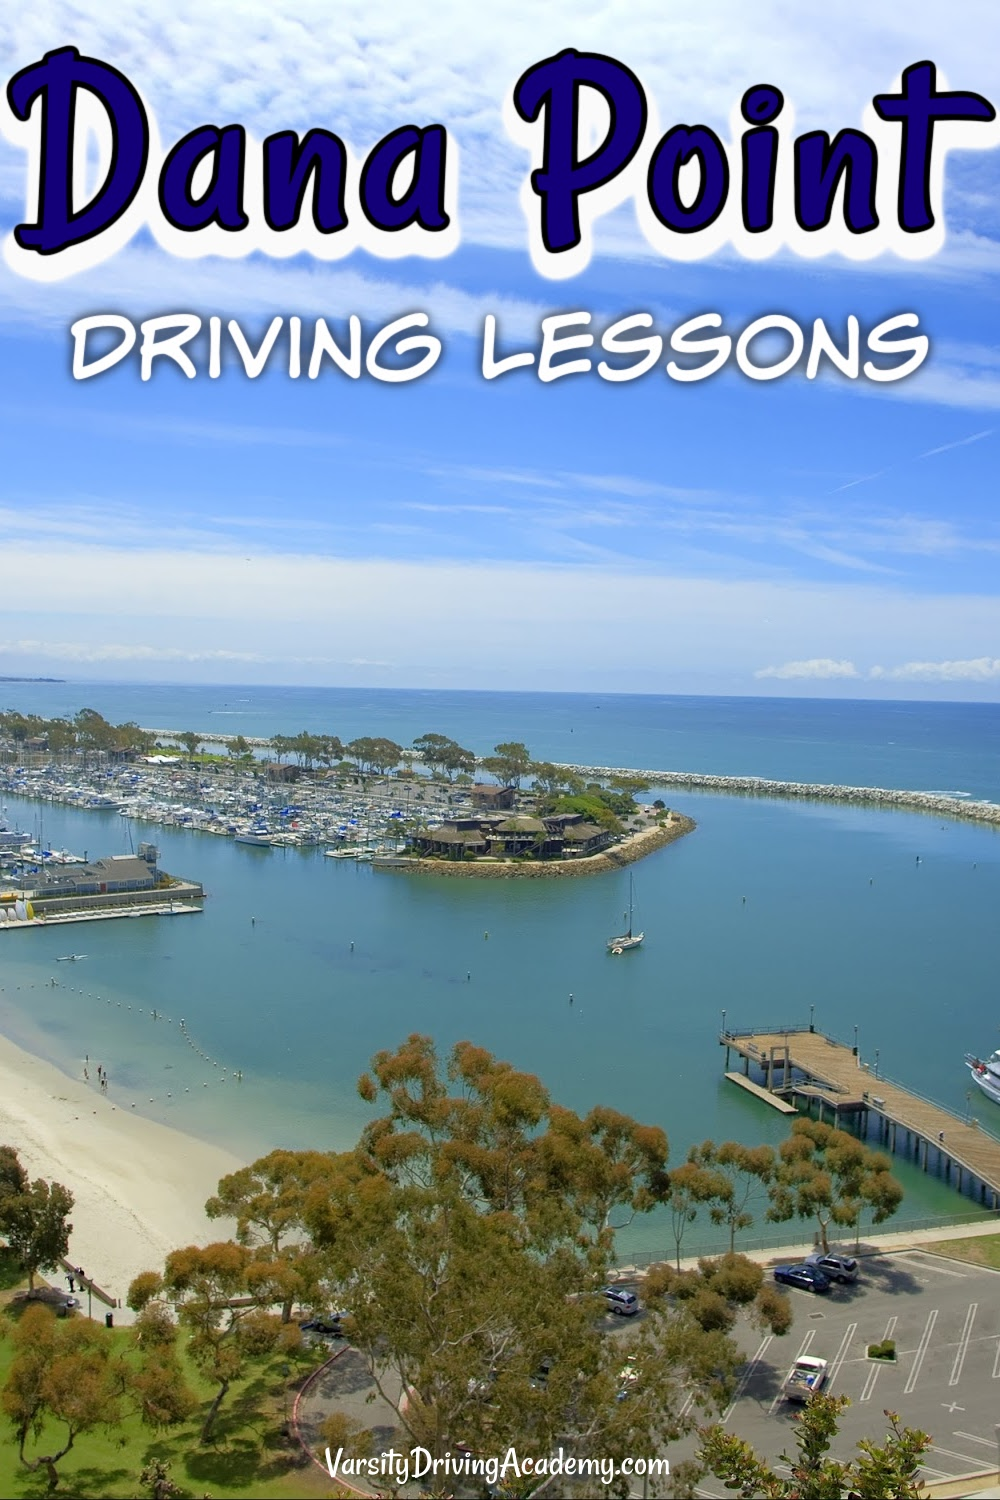 Dana Point driving lessons are the only way to get a valid driver's license in Dana Point and Varsity Driving Academy can help.